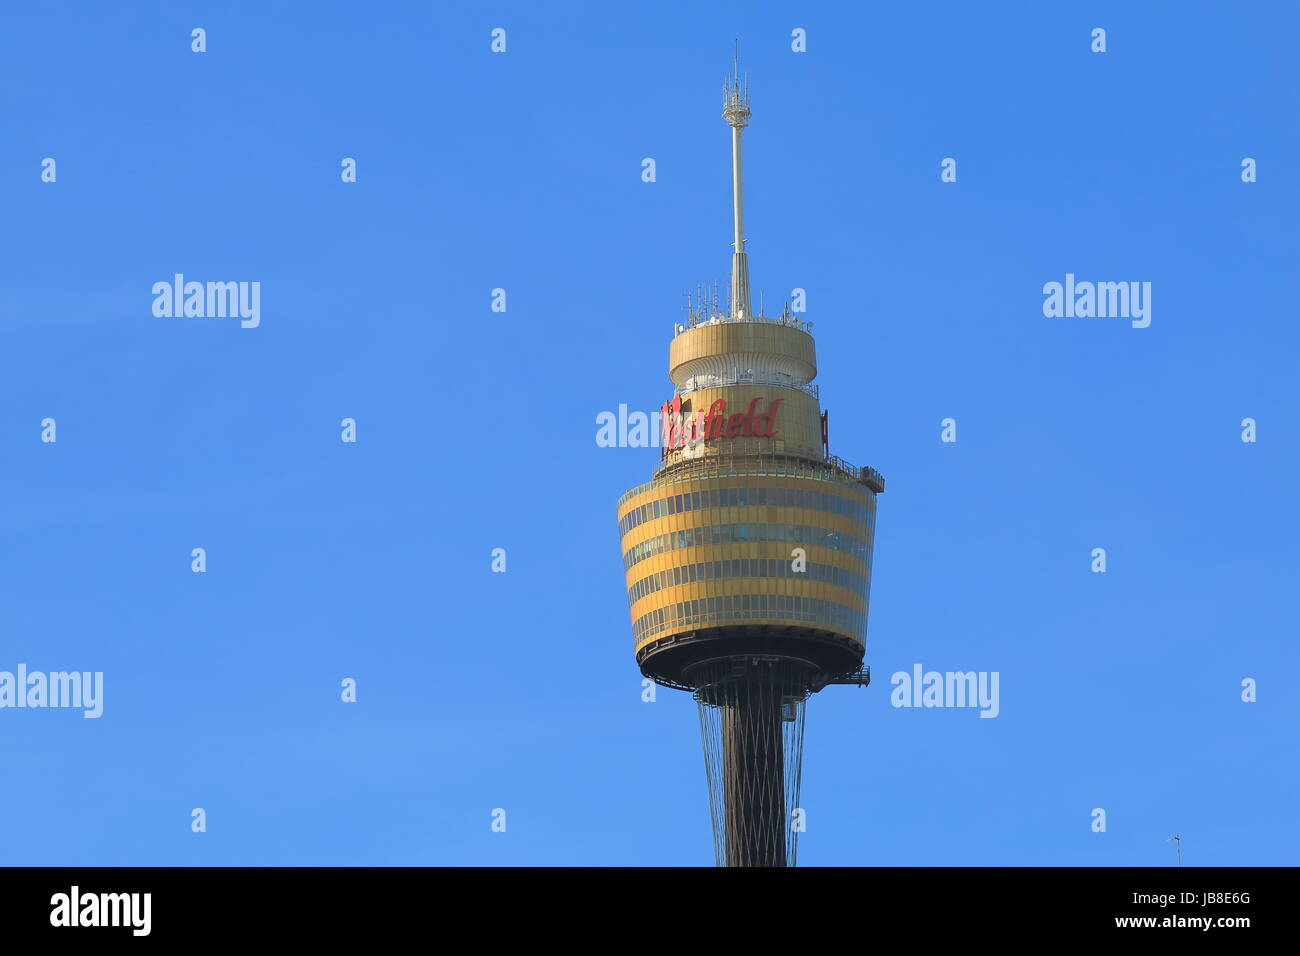 Sydney Tower Eye in Sydney Australia. Sydney Tower Eye is Sydney's tallest structure and the second tallest - Stock Image